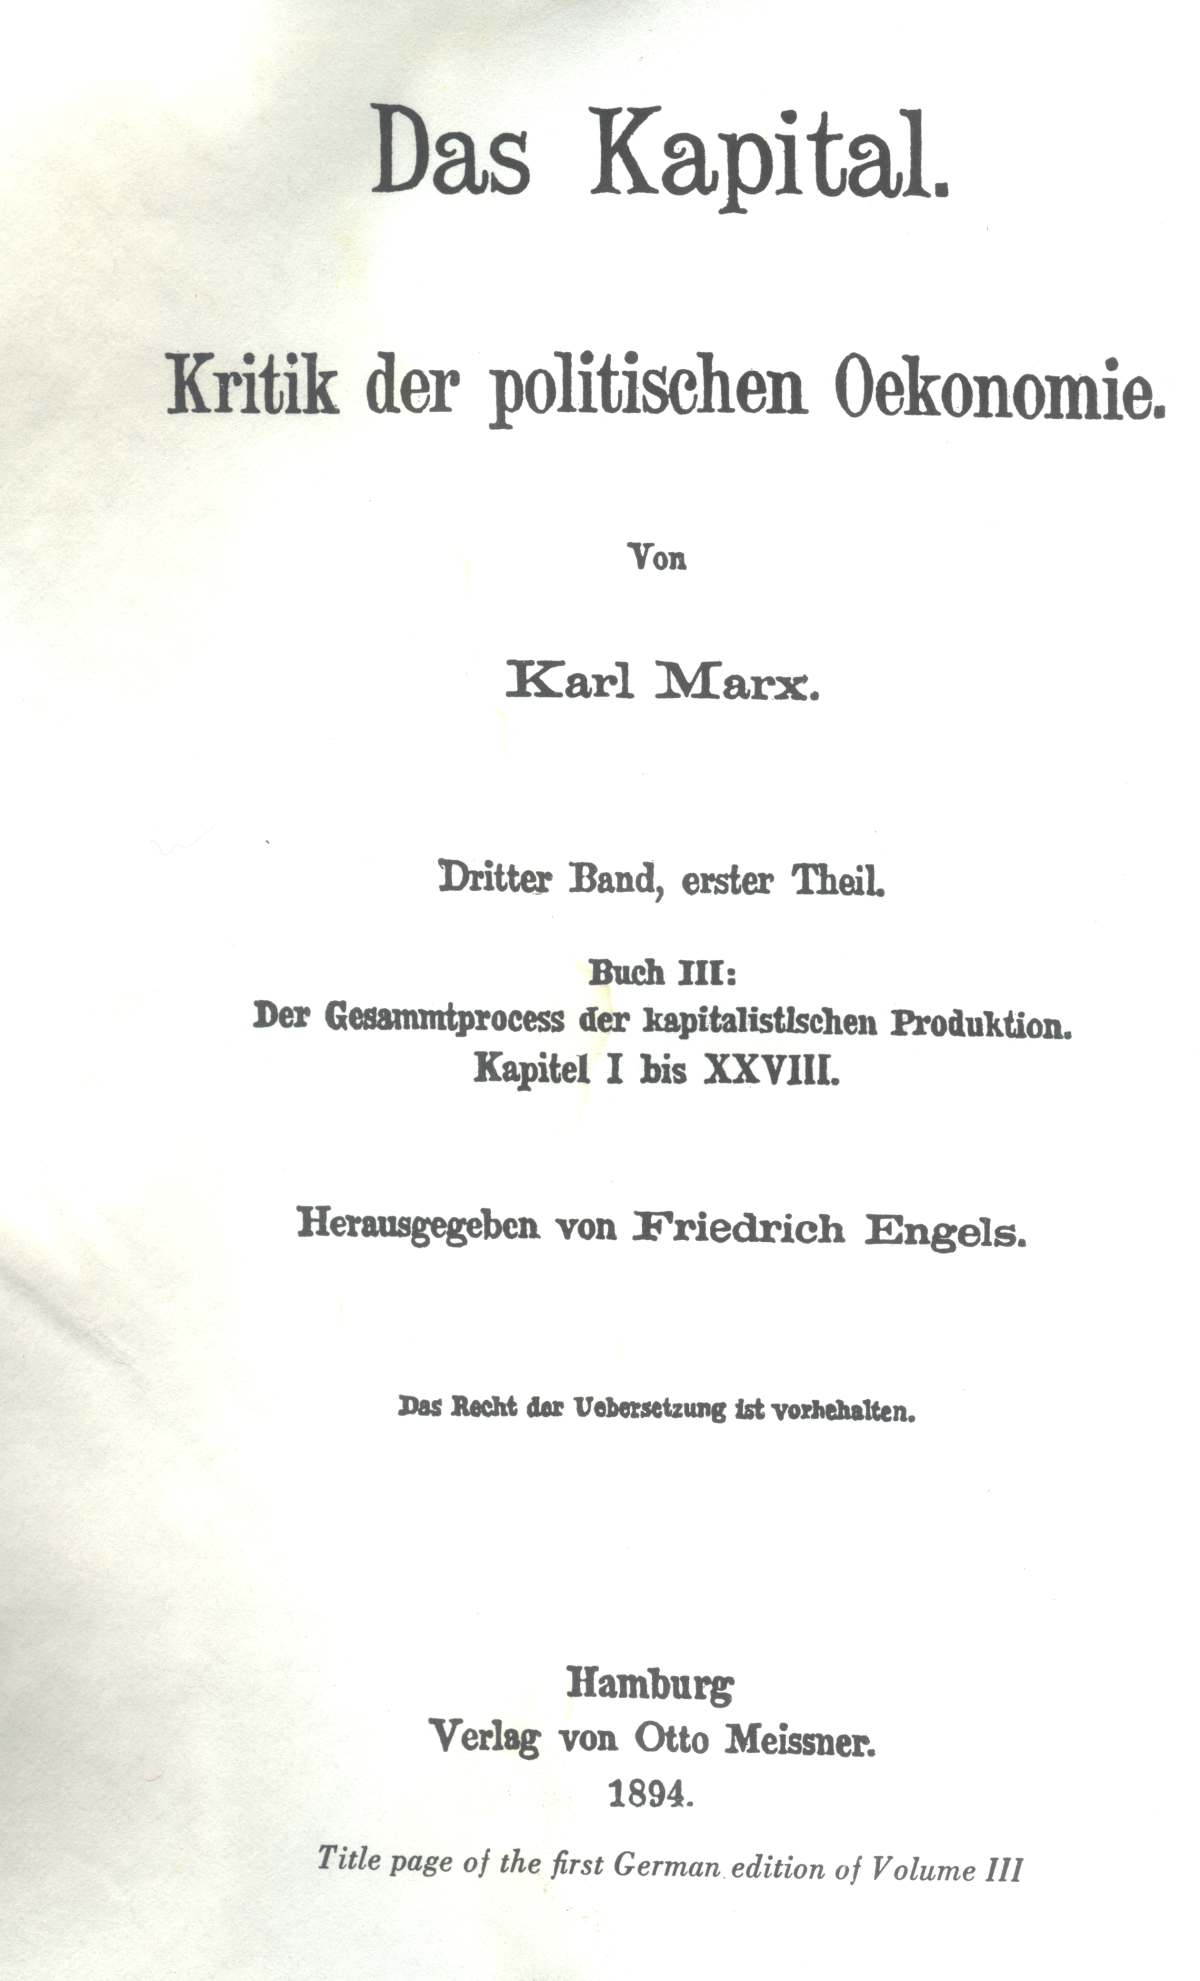 Kapital ebook download marx das karl